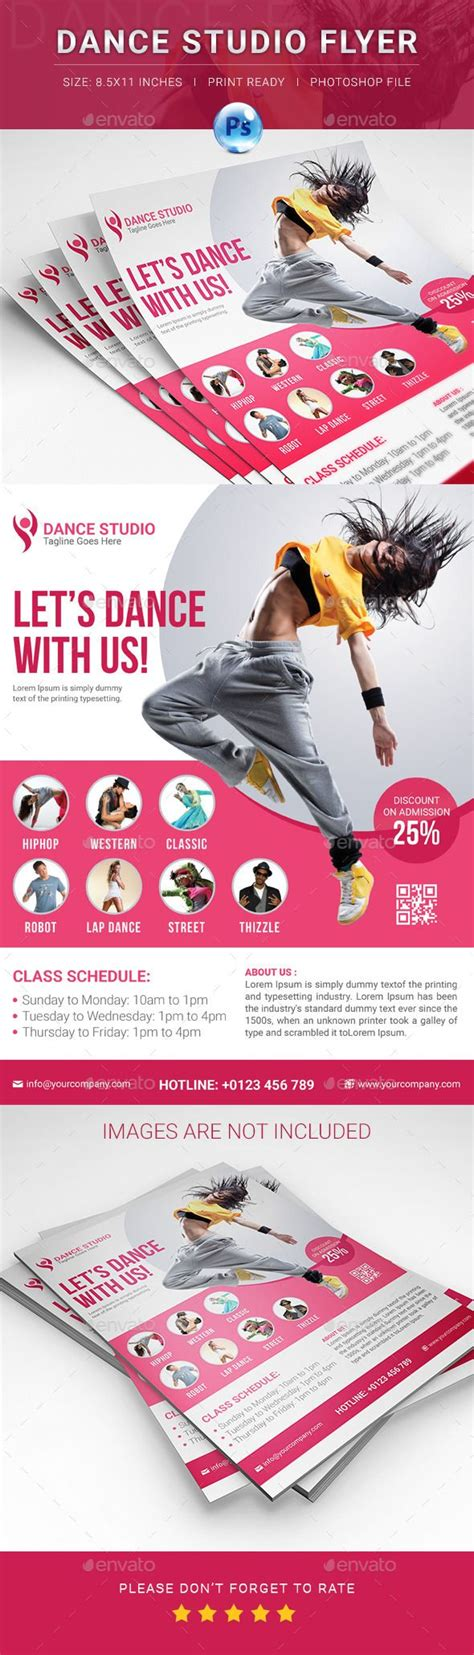 templates for dance flyers dance studio flyer advertising design and dance